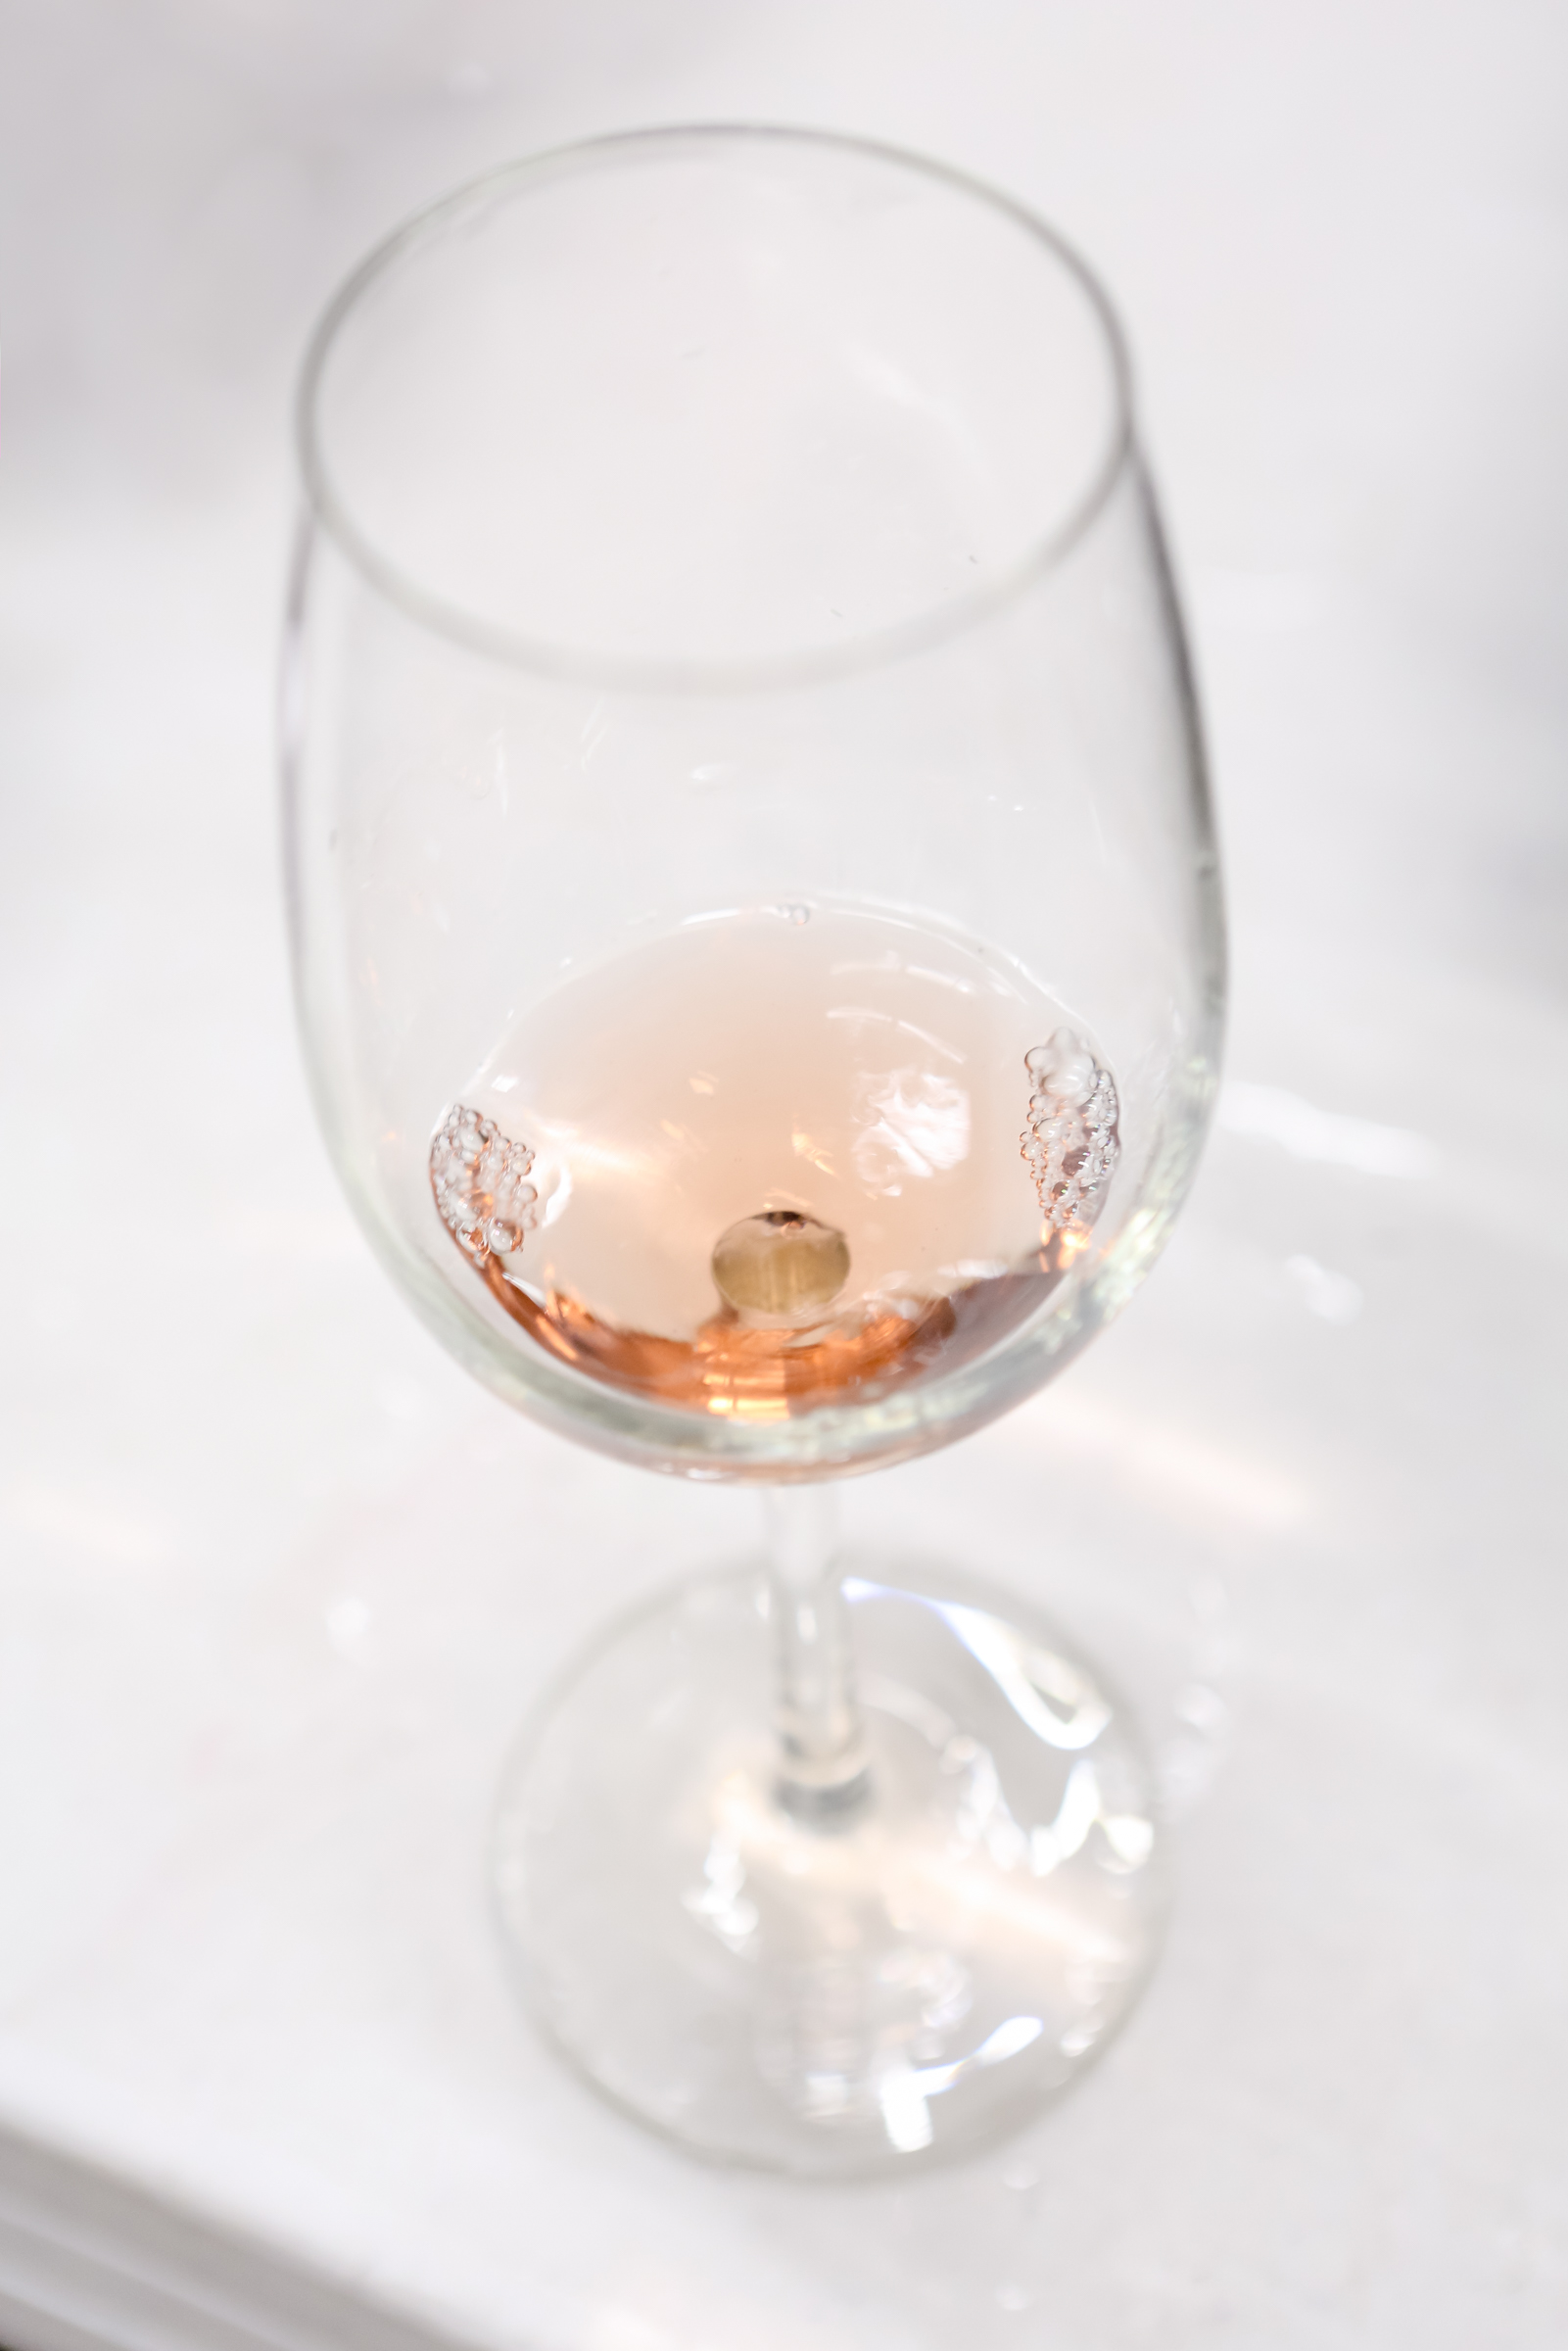 Rethinking Pink: What's Ahead for Rosé Season